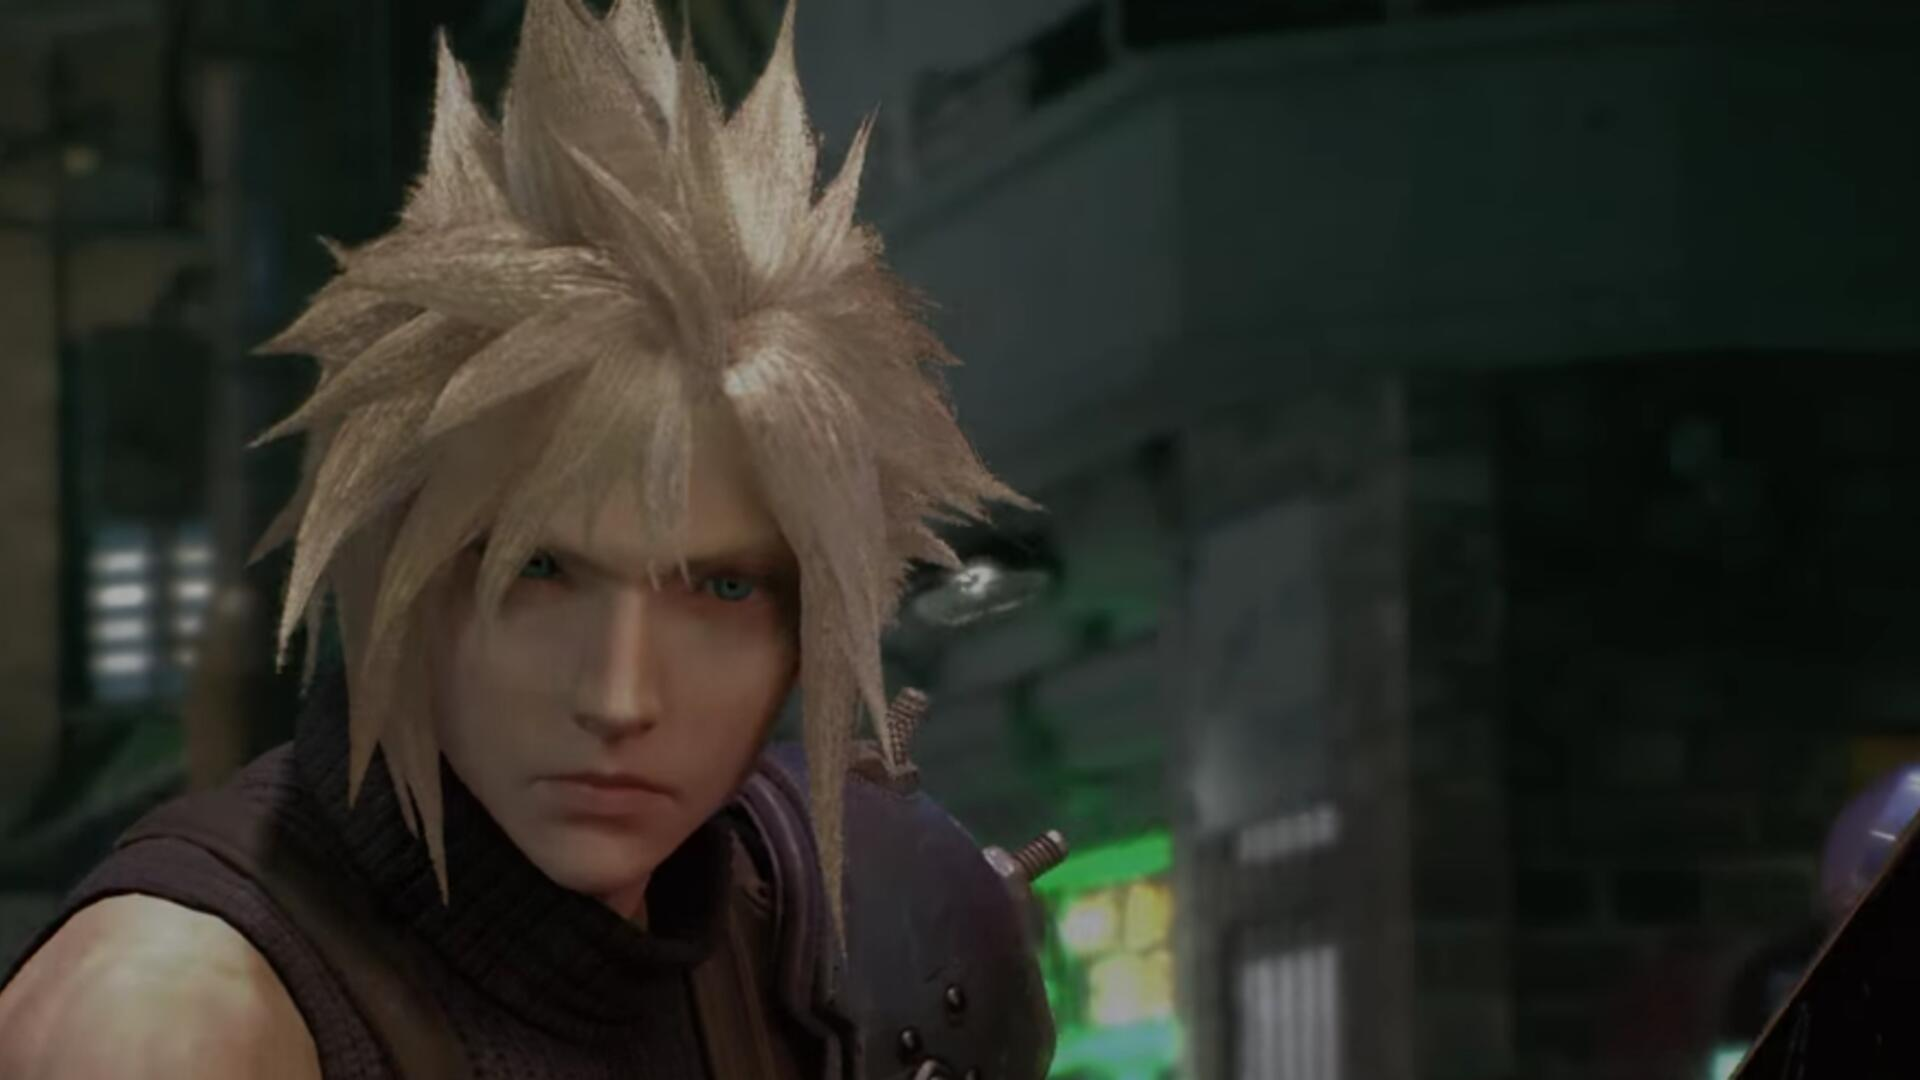 Square Enix is Pitching Final Fantasy VII Remake as an Action Game in Job Listings